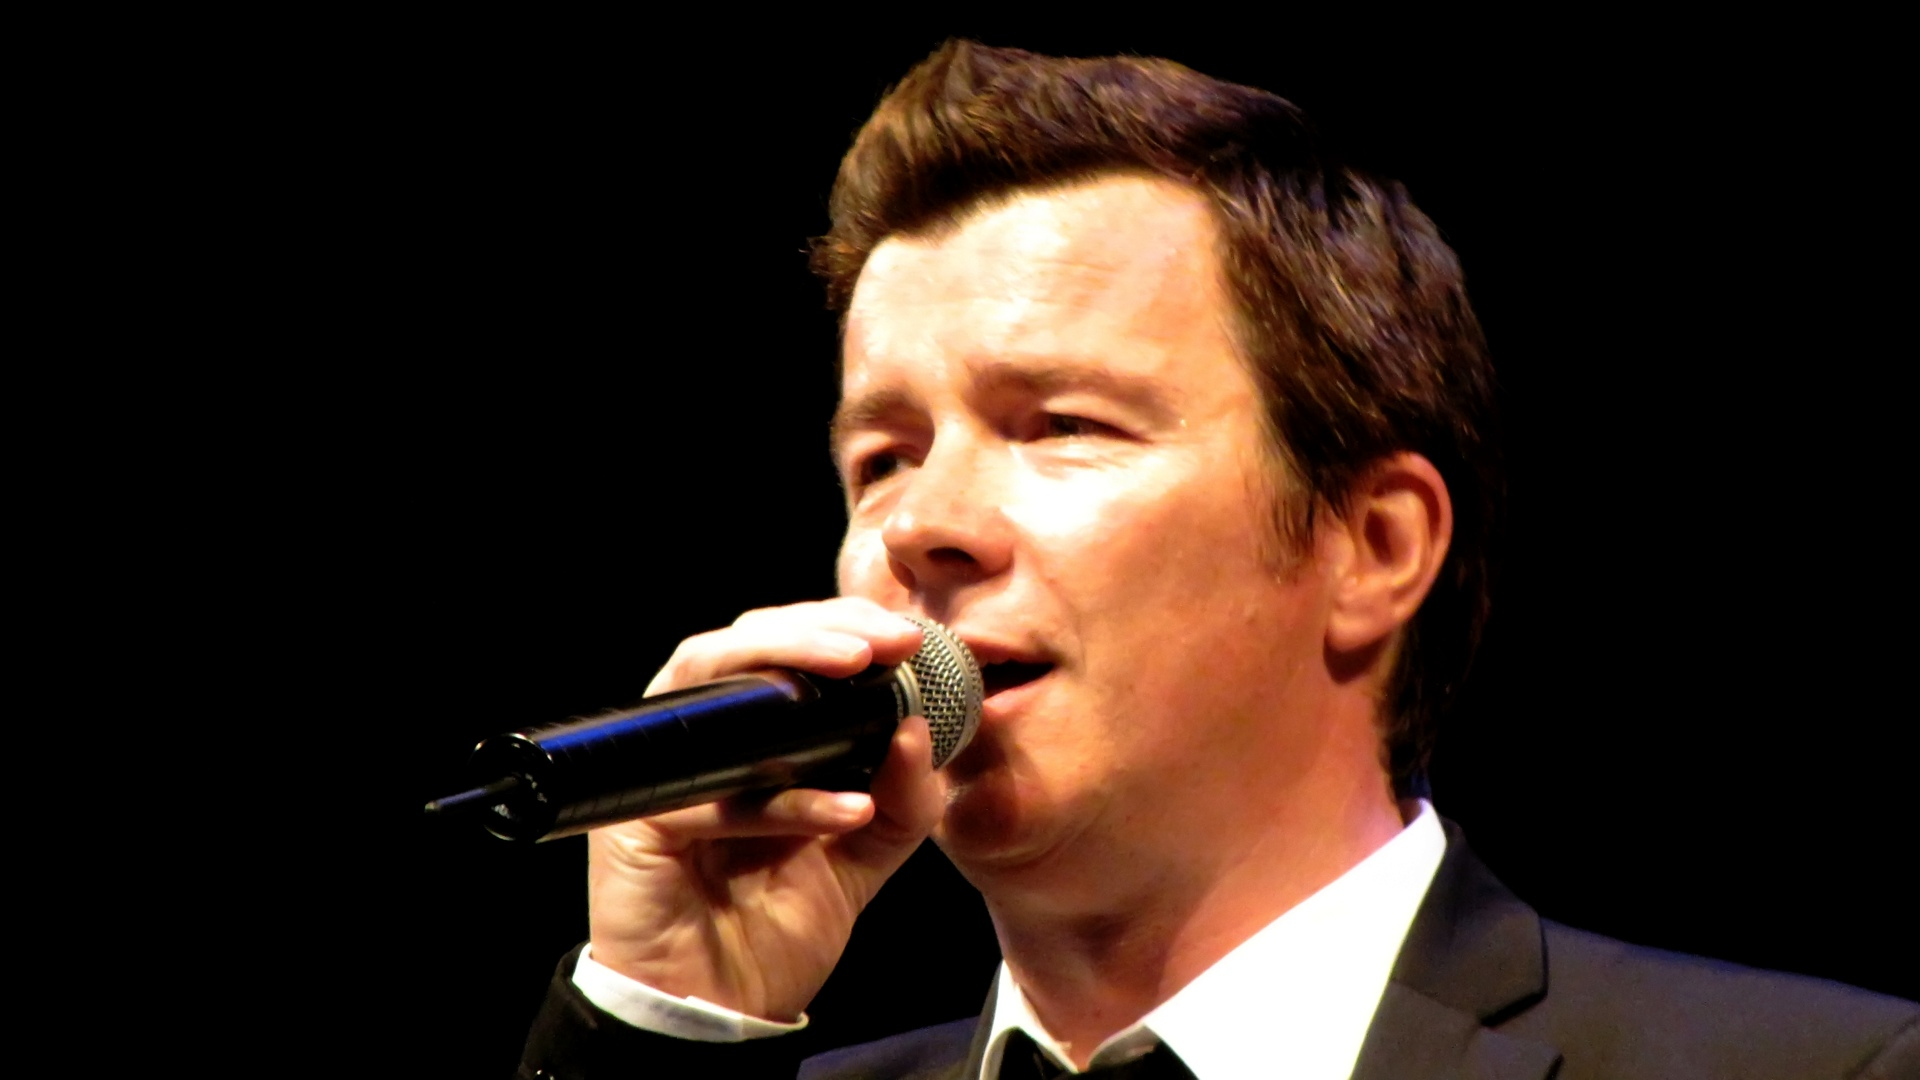 Never Gonna Give You Up av Rick Astley